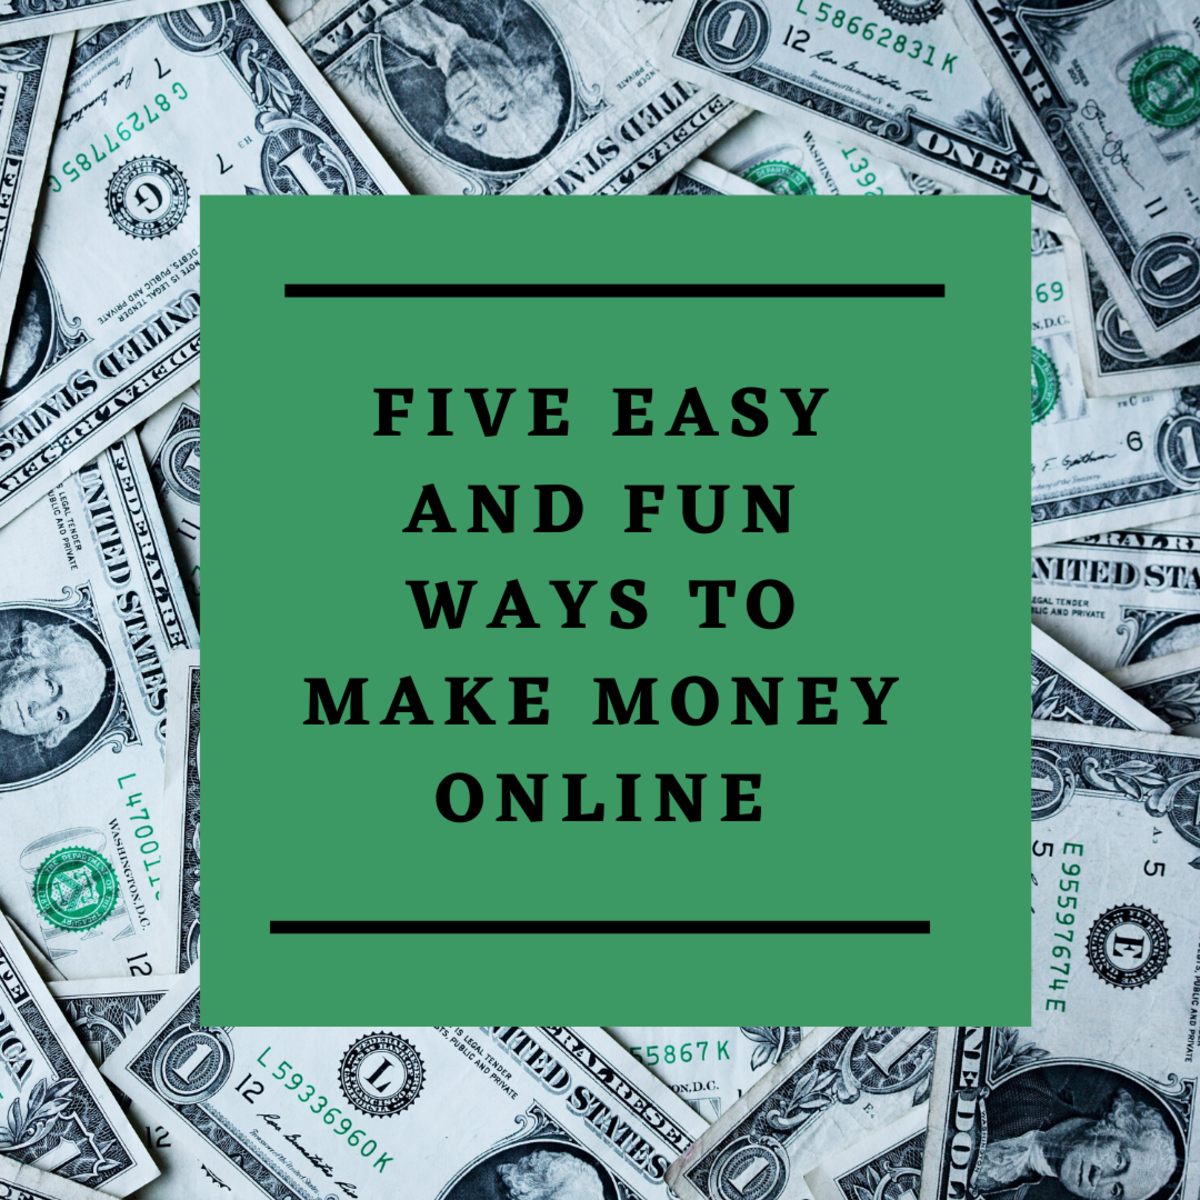 Read on to learn fun ways to make extra money online.